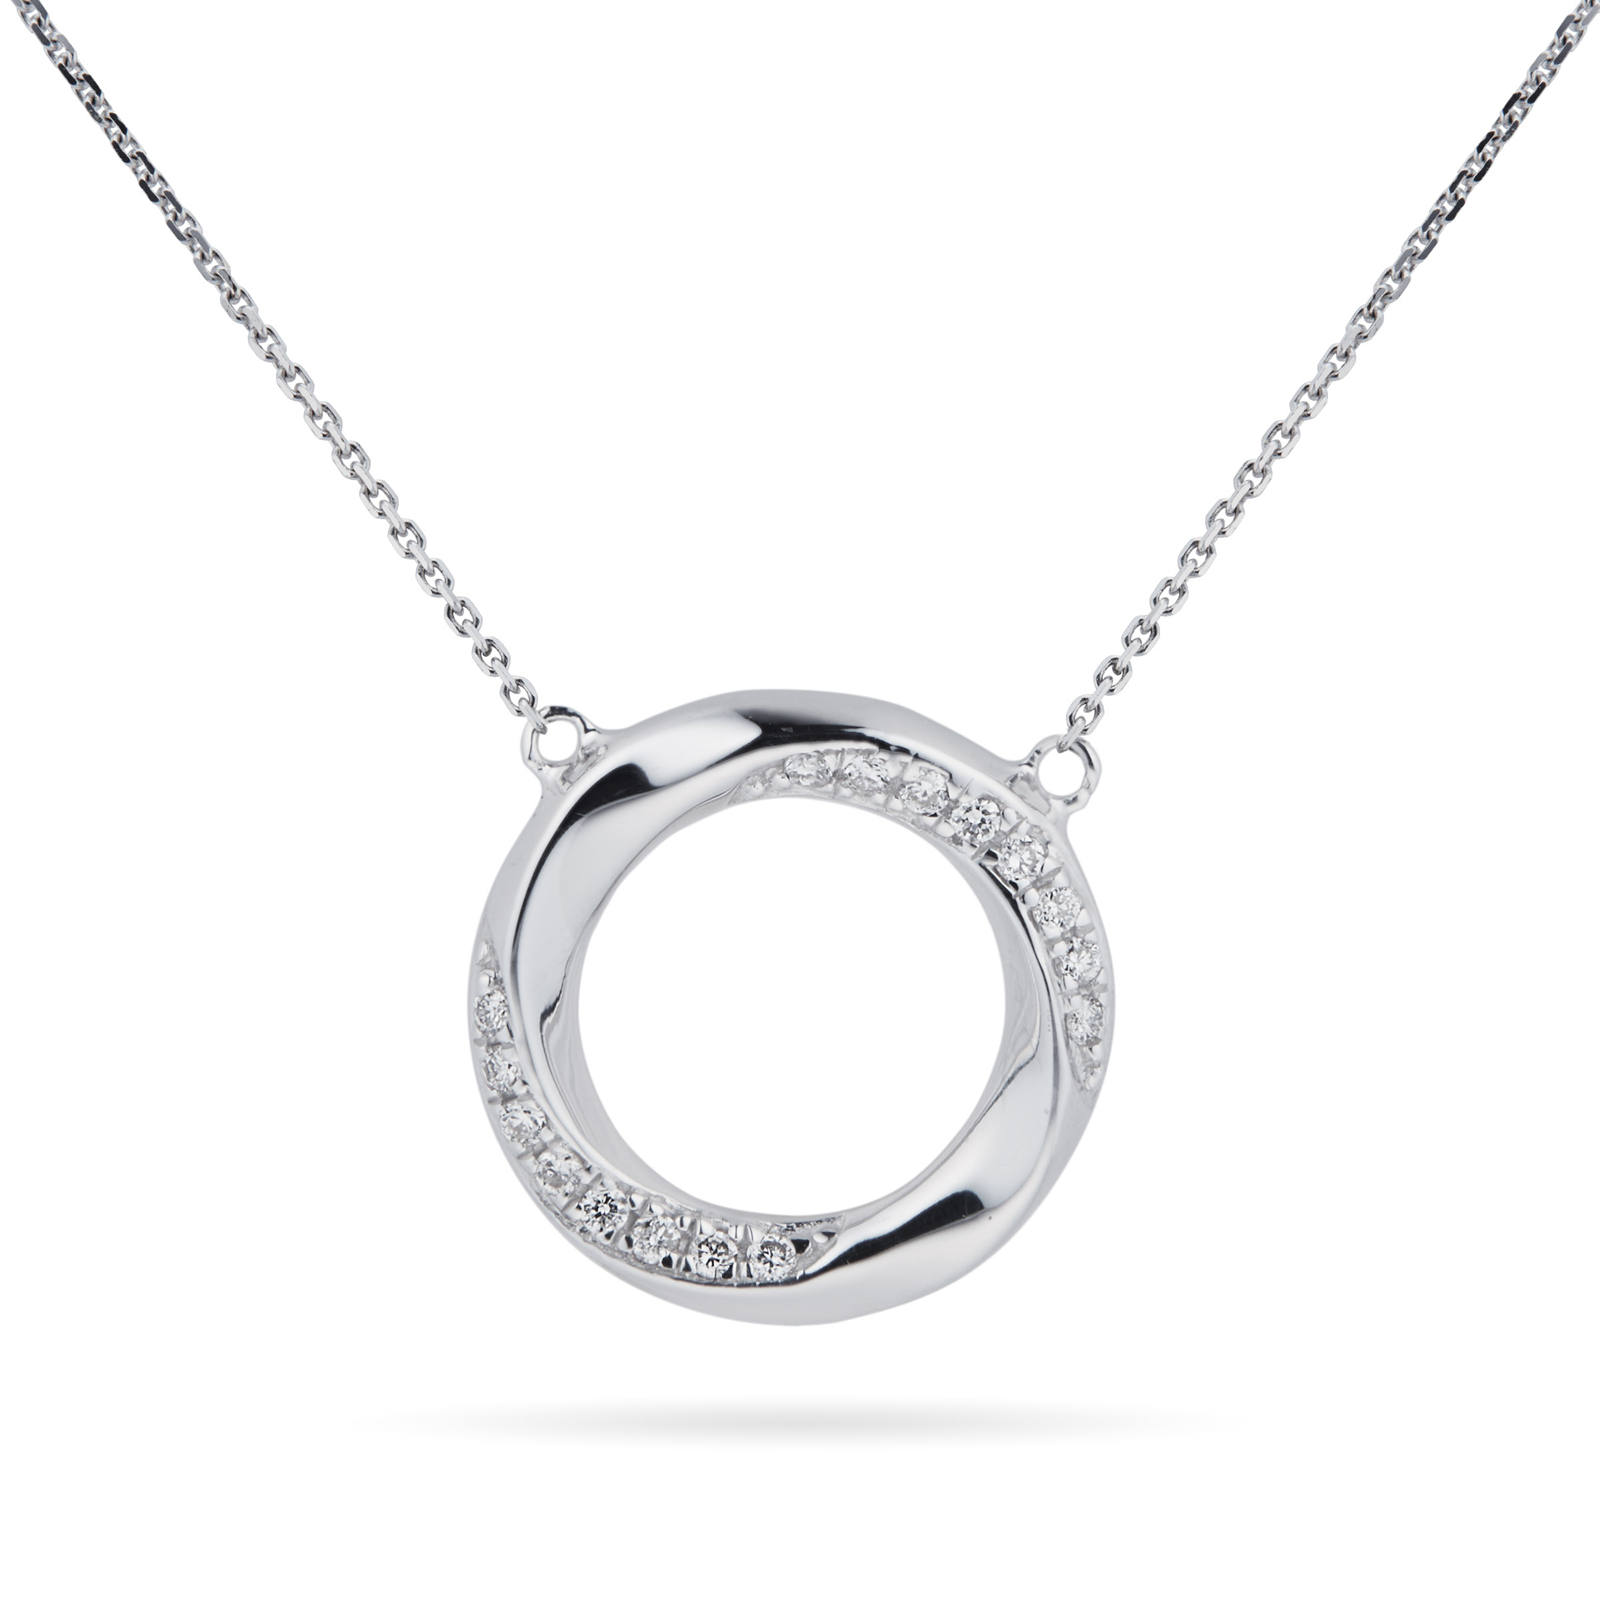 9ct White Gold 0.04 Carat Total Weight Diamond Circle Pendant